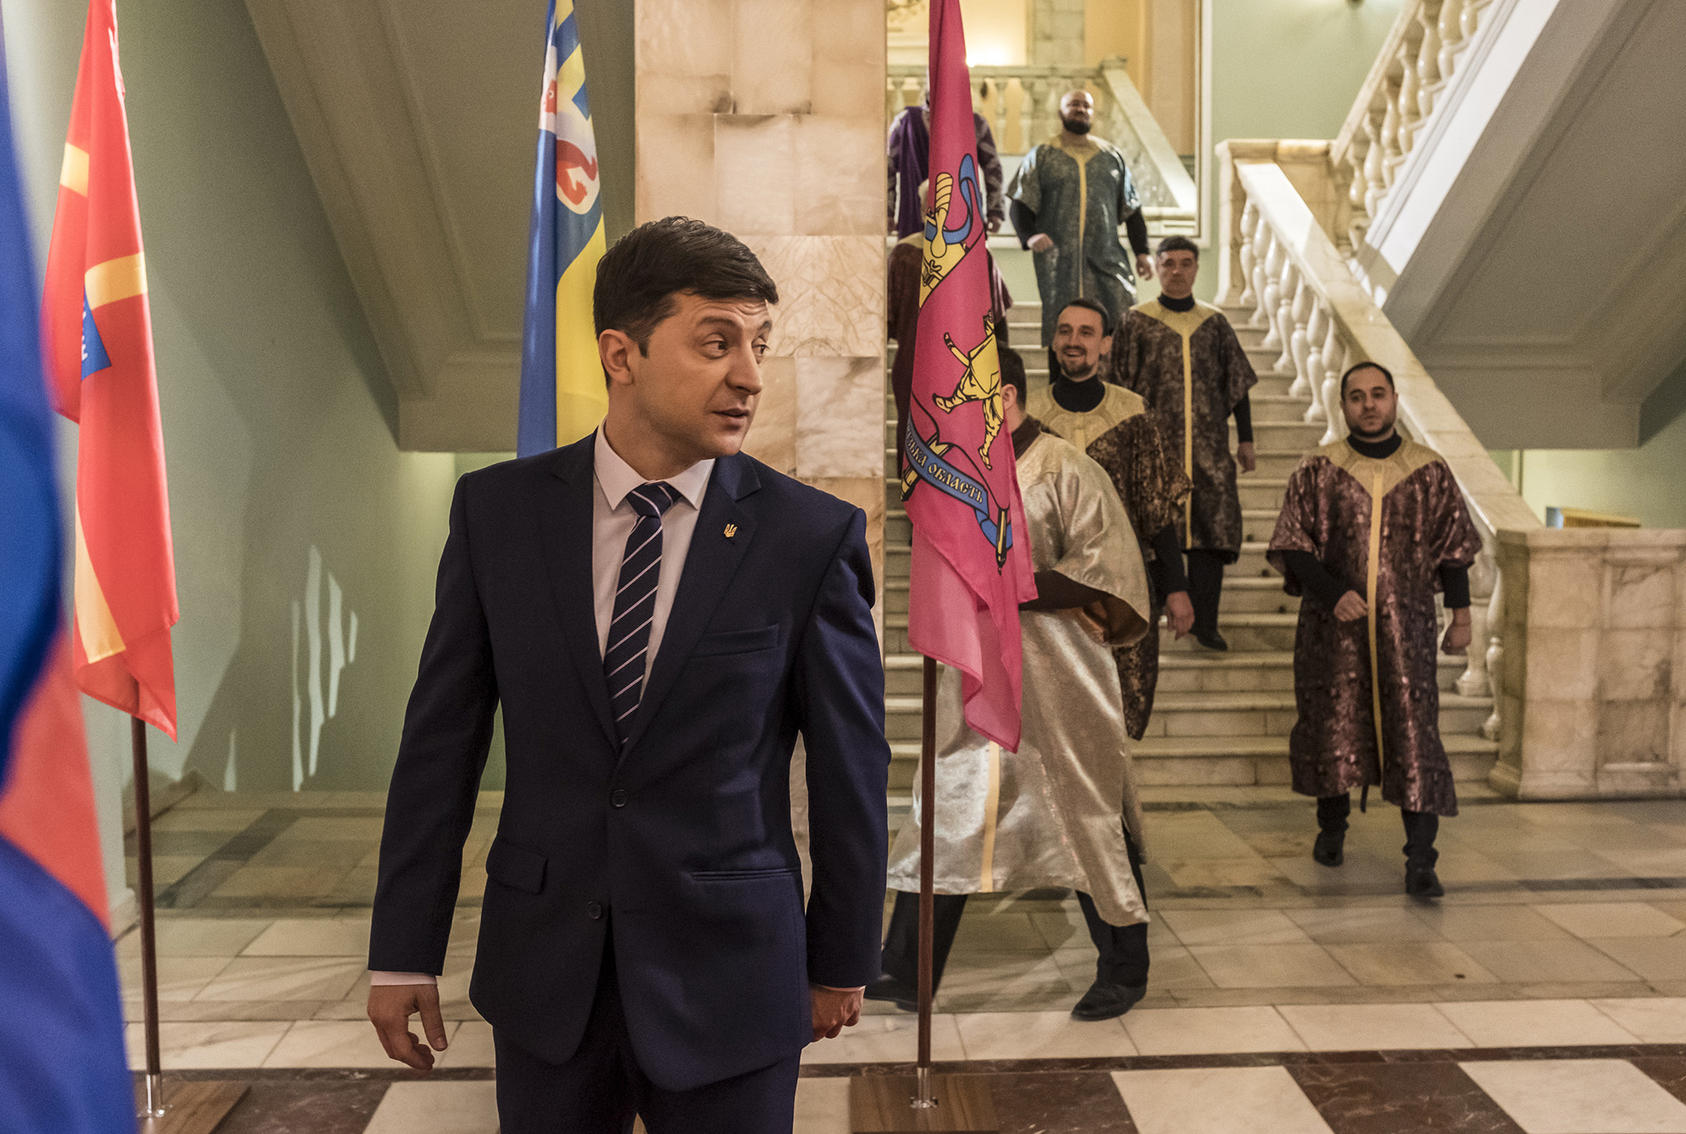 Amid the election campaign, Volodymyr Zelenskiy rehearses on the set of the TV show in which he played an accidental president. His election as Ukraine's real leader poses new questions. (Brendan Hoffman/The New York Times)